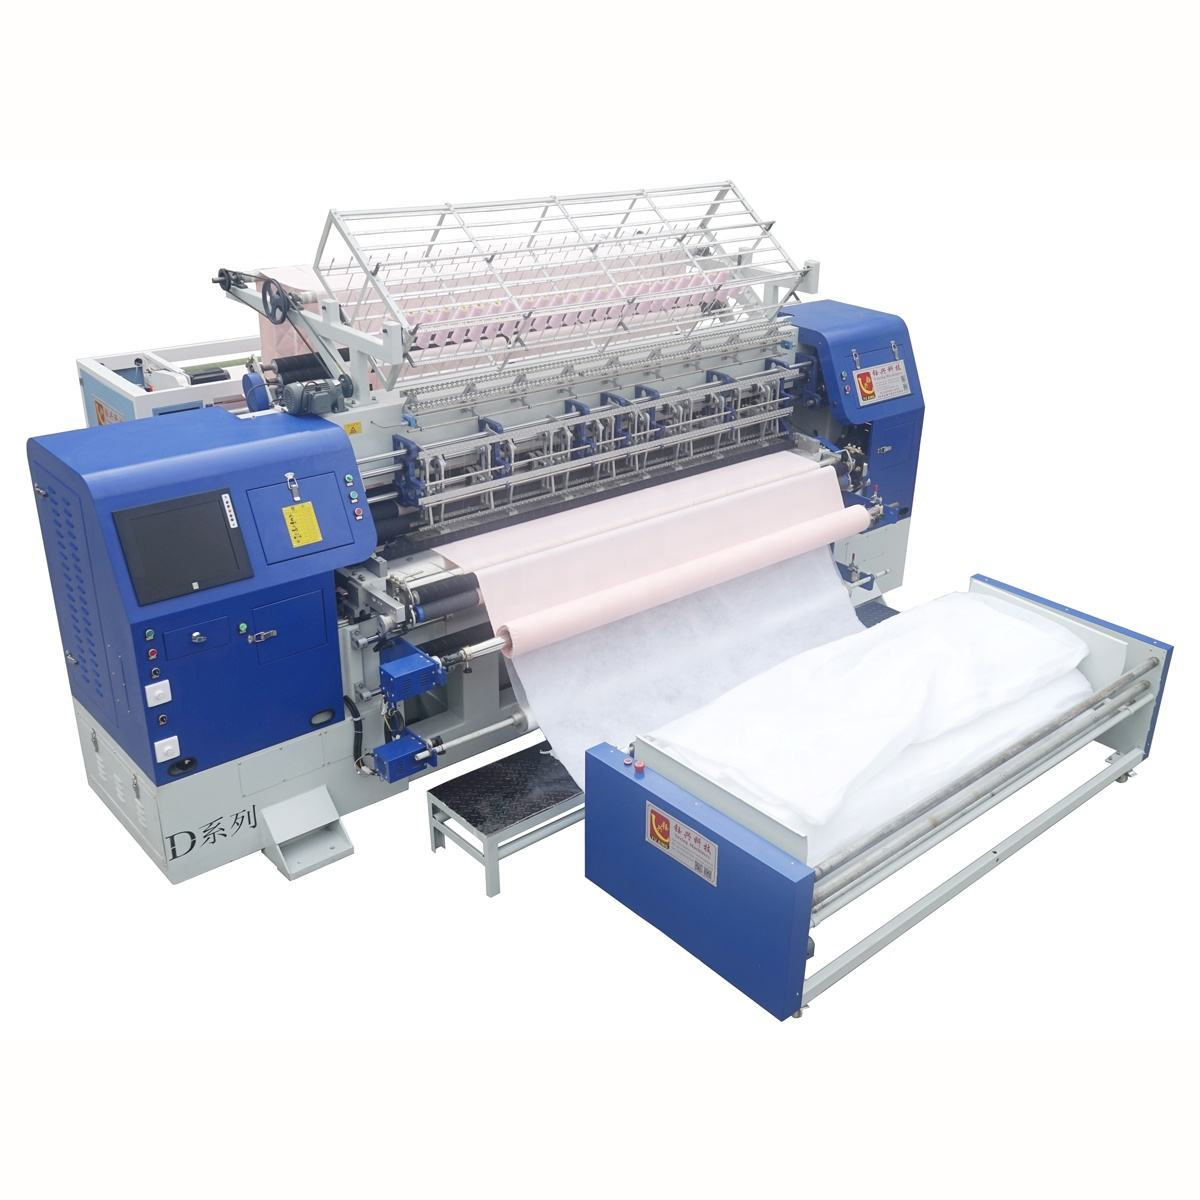 1200rpm NewestComputer Shuttle Multi needle Quilting Machine Production Line with Cutting for Bed Cover